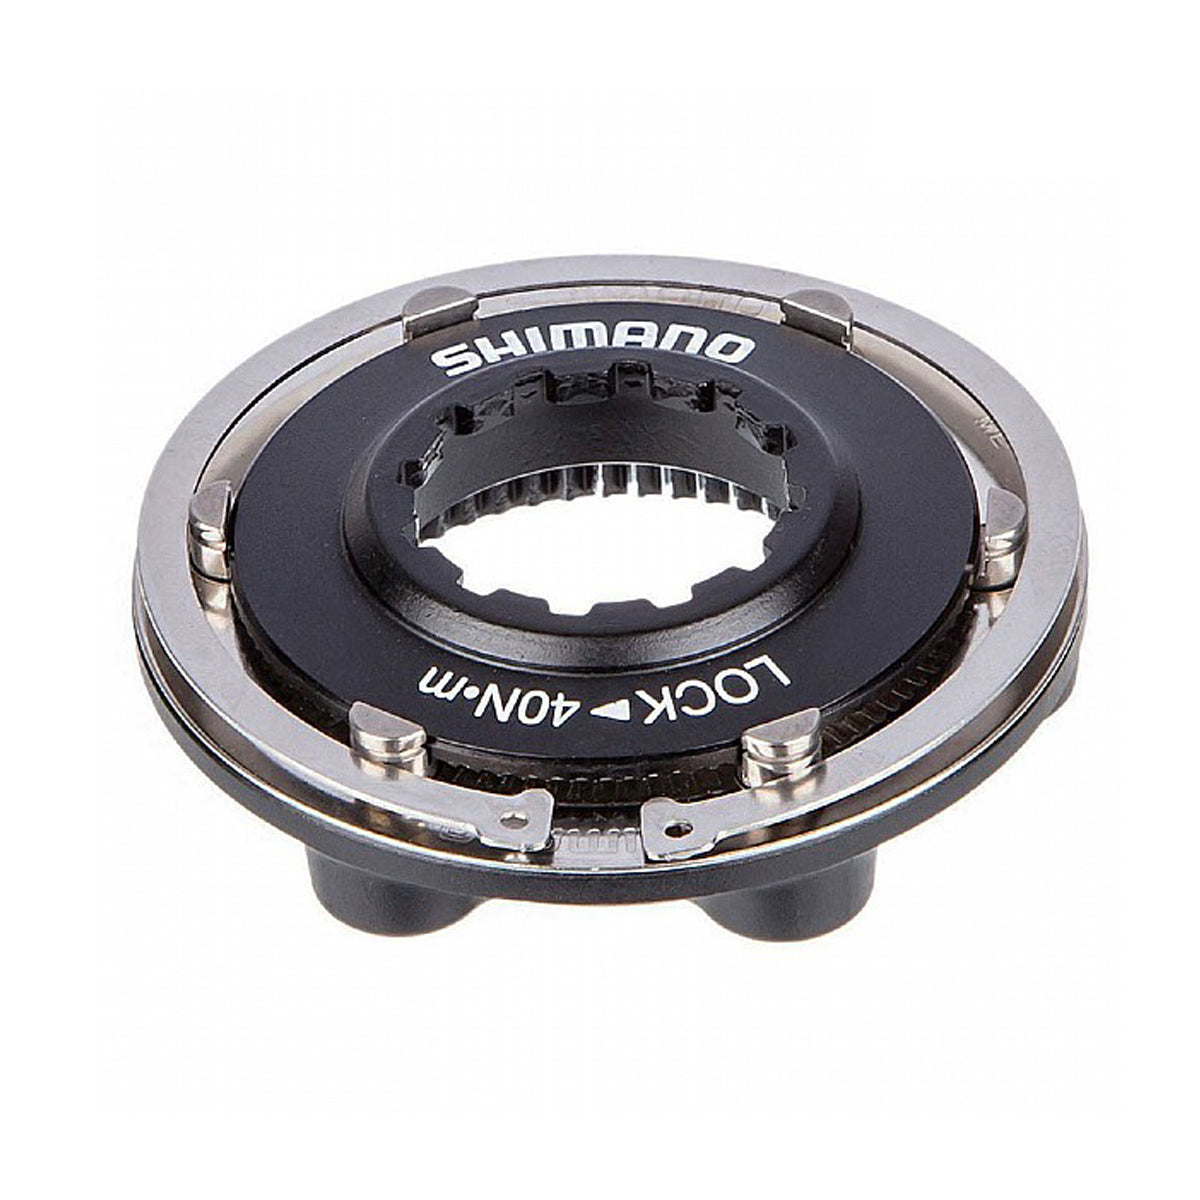 Shimano Center Lock Adaptör Sm-Rtad10 - velespit